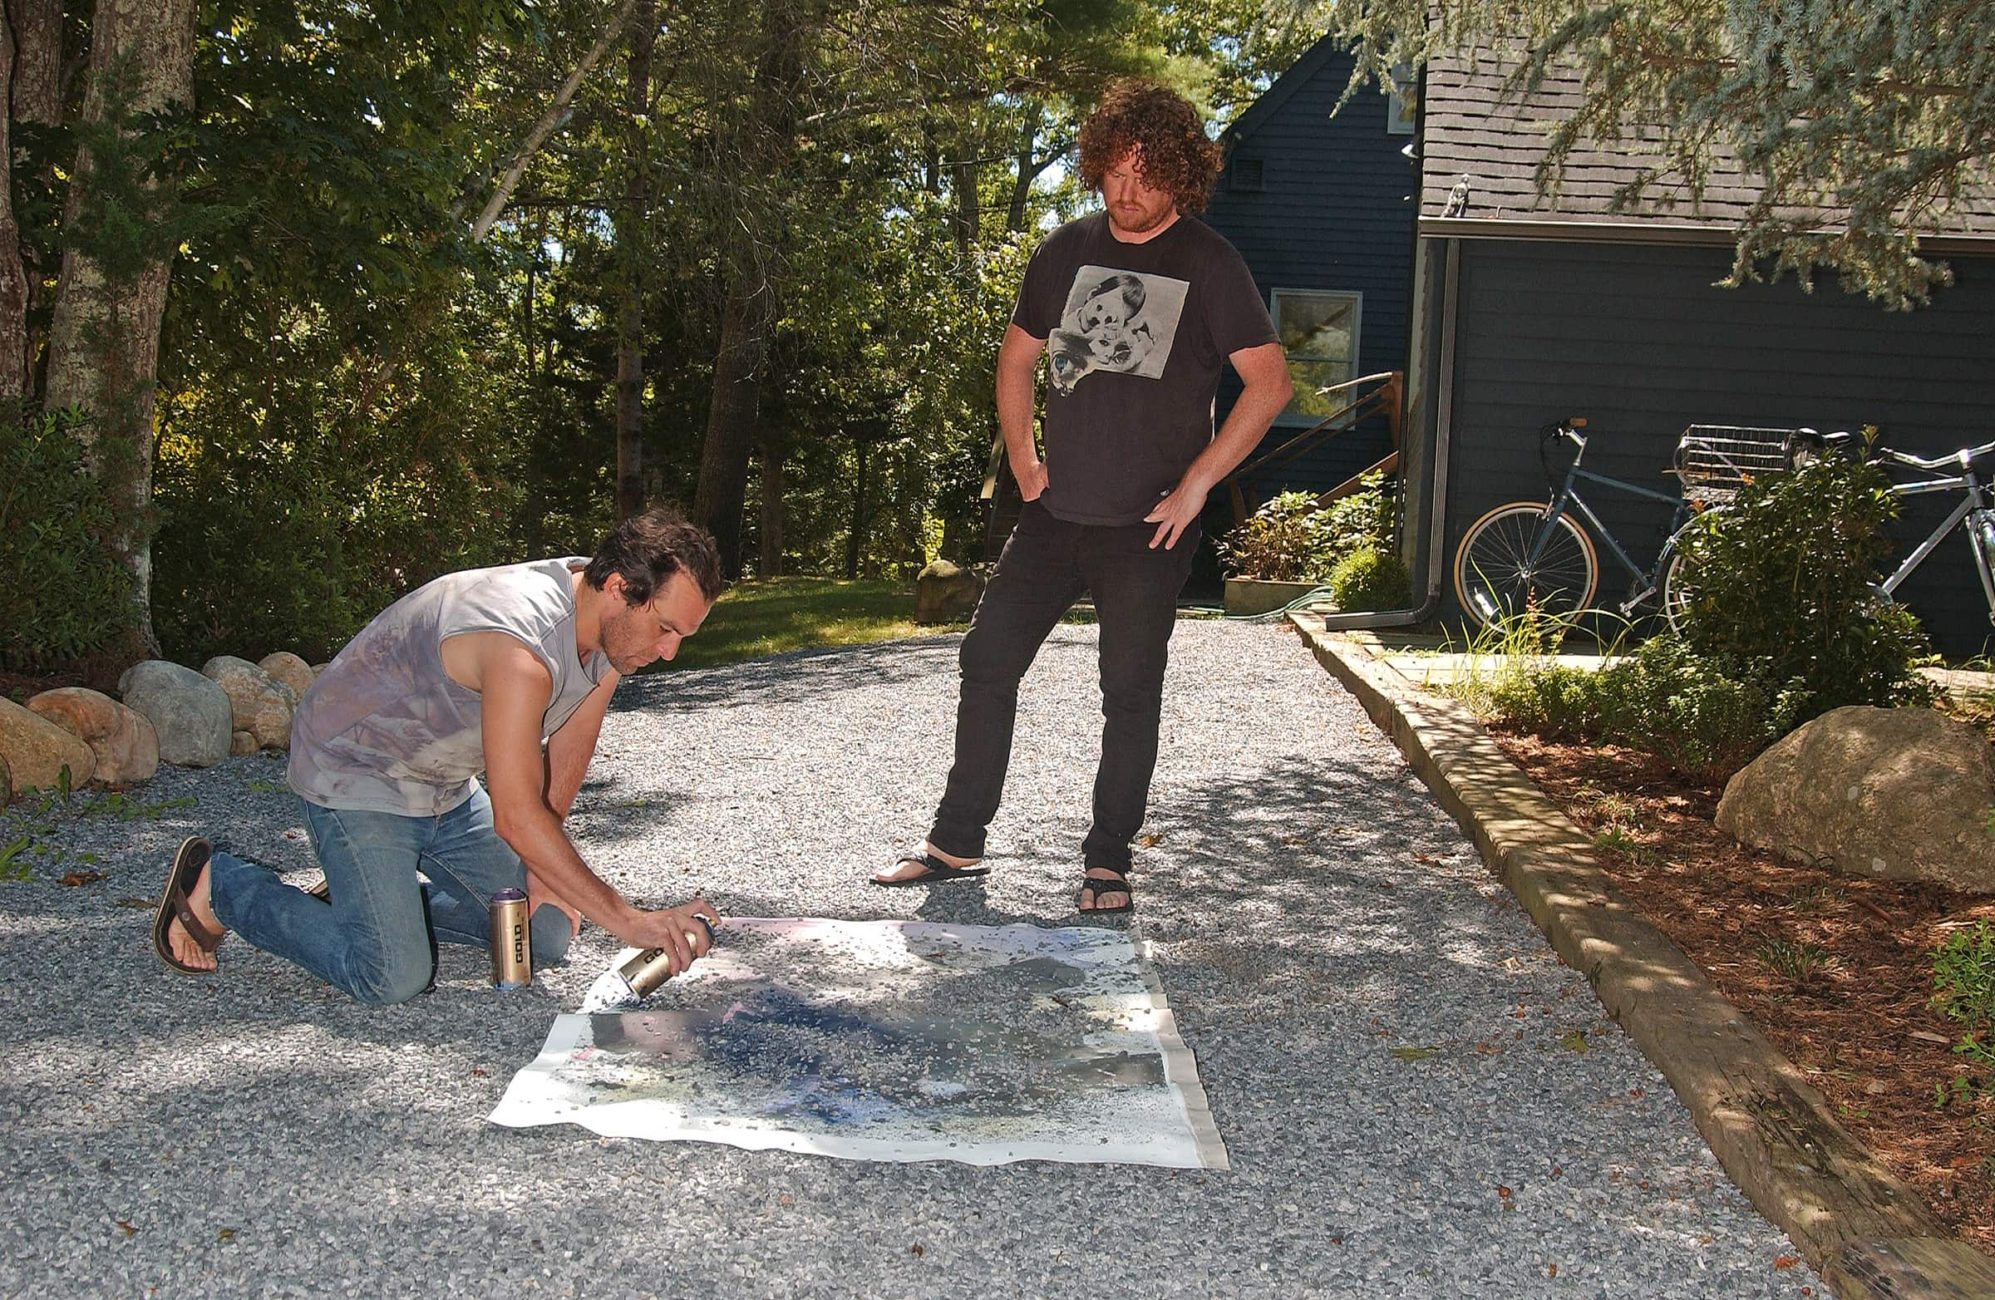 Artists Justin Lowe and Jonah Freeman in residence at the historic and former home and studio of the painter Elaine de Kooning in East Hampton, NY. The sculptor John Chamberlain lived and woked in this home-studio. This American artist team is represented by the international art gallery Marlborough based in London, England.